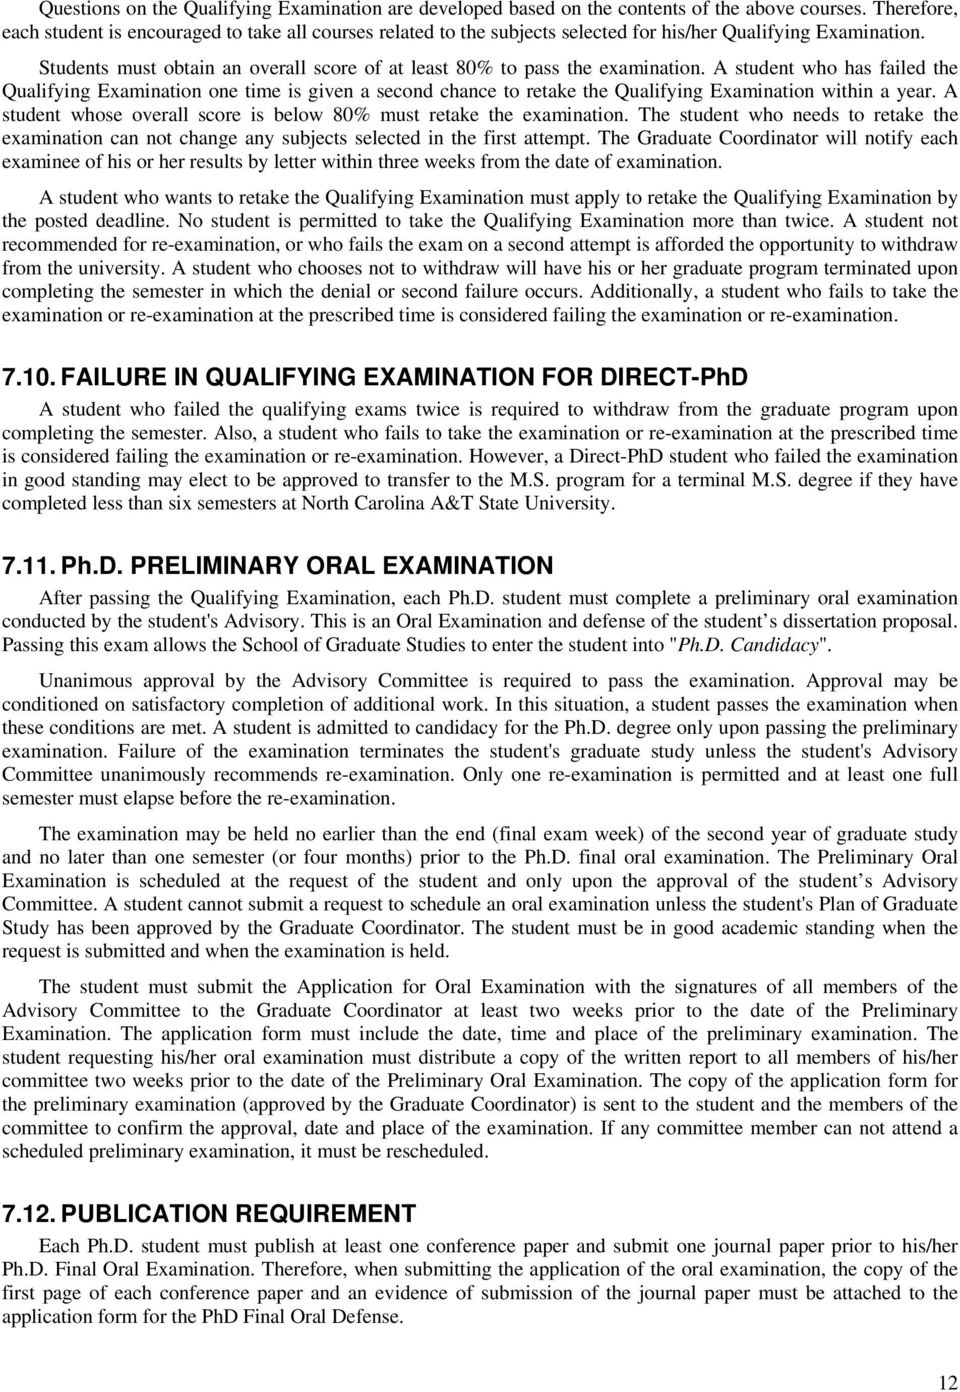 Students must obtain an overall score of at least 80% to pass the examination.